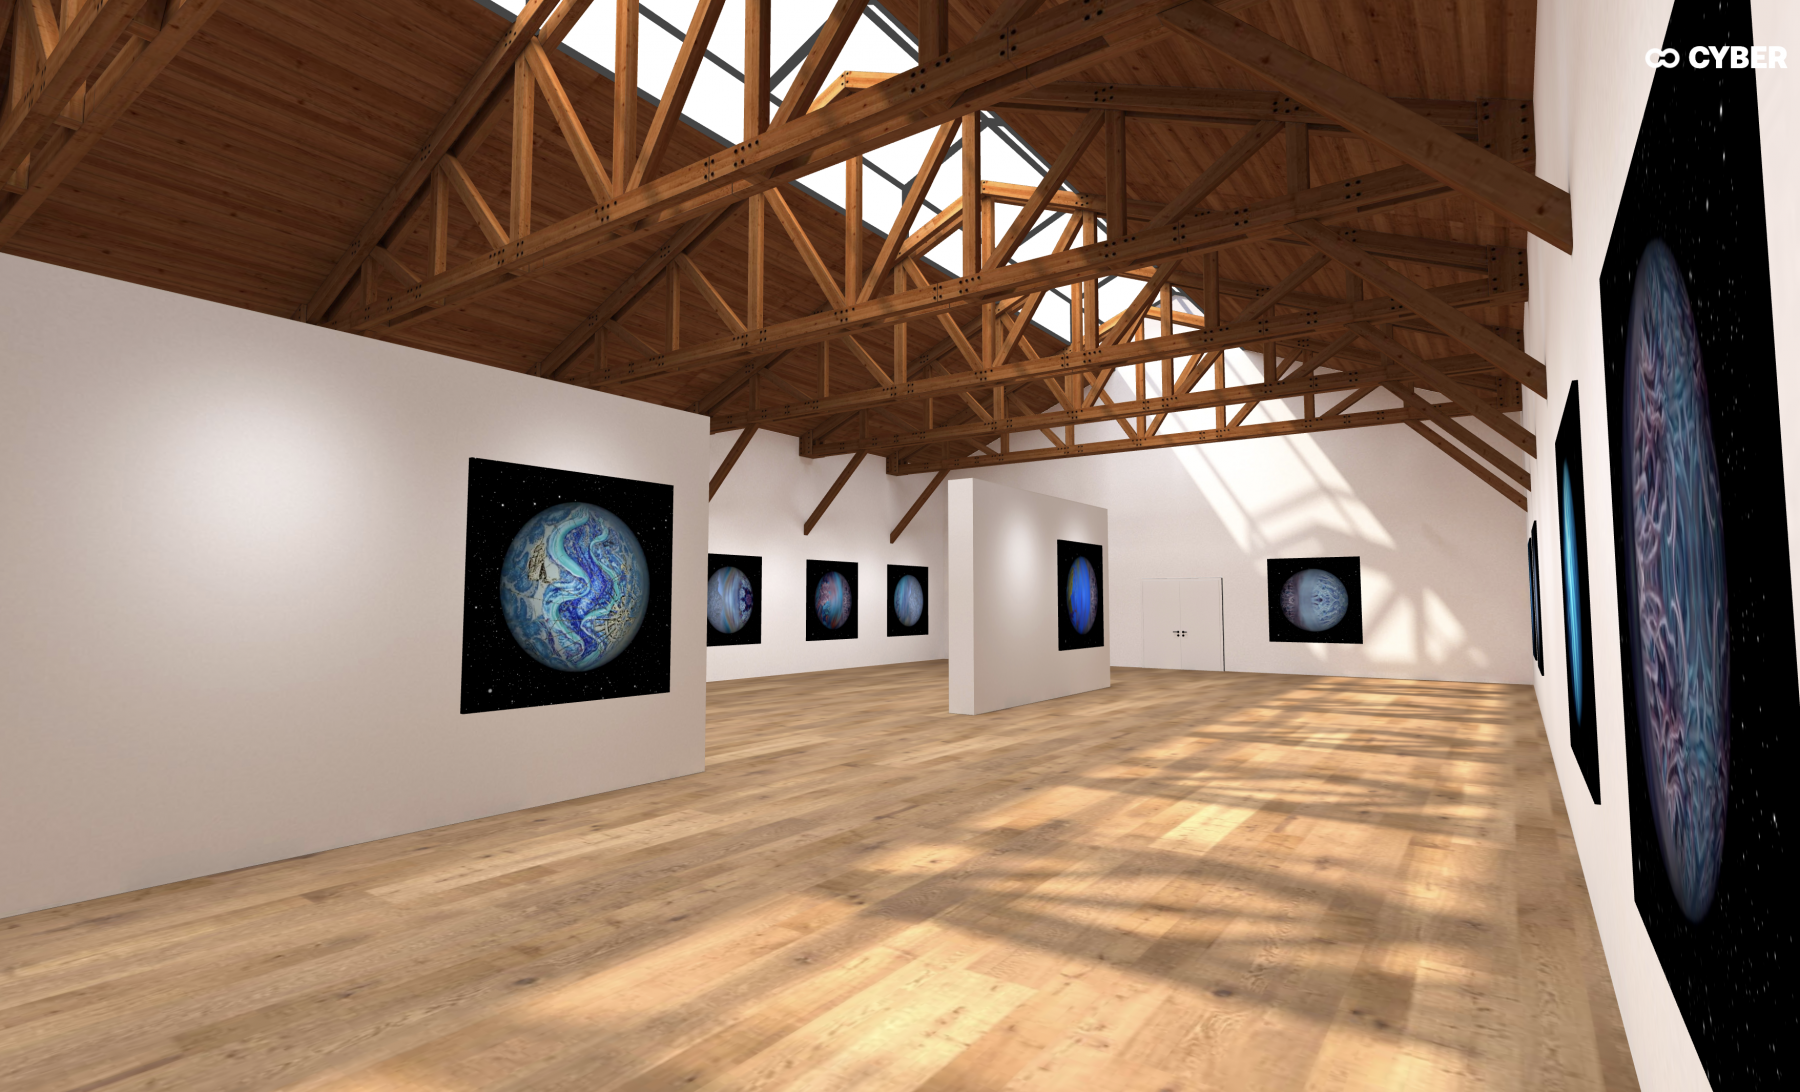 Metaverse OnCyber Gallery space featuring NFTs by Nikolina Kovalenko.